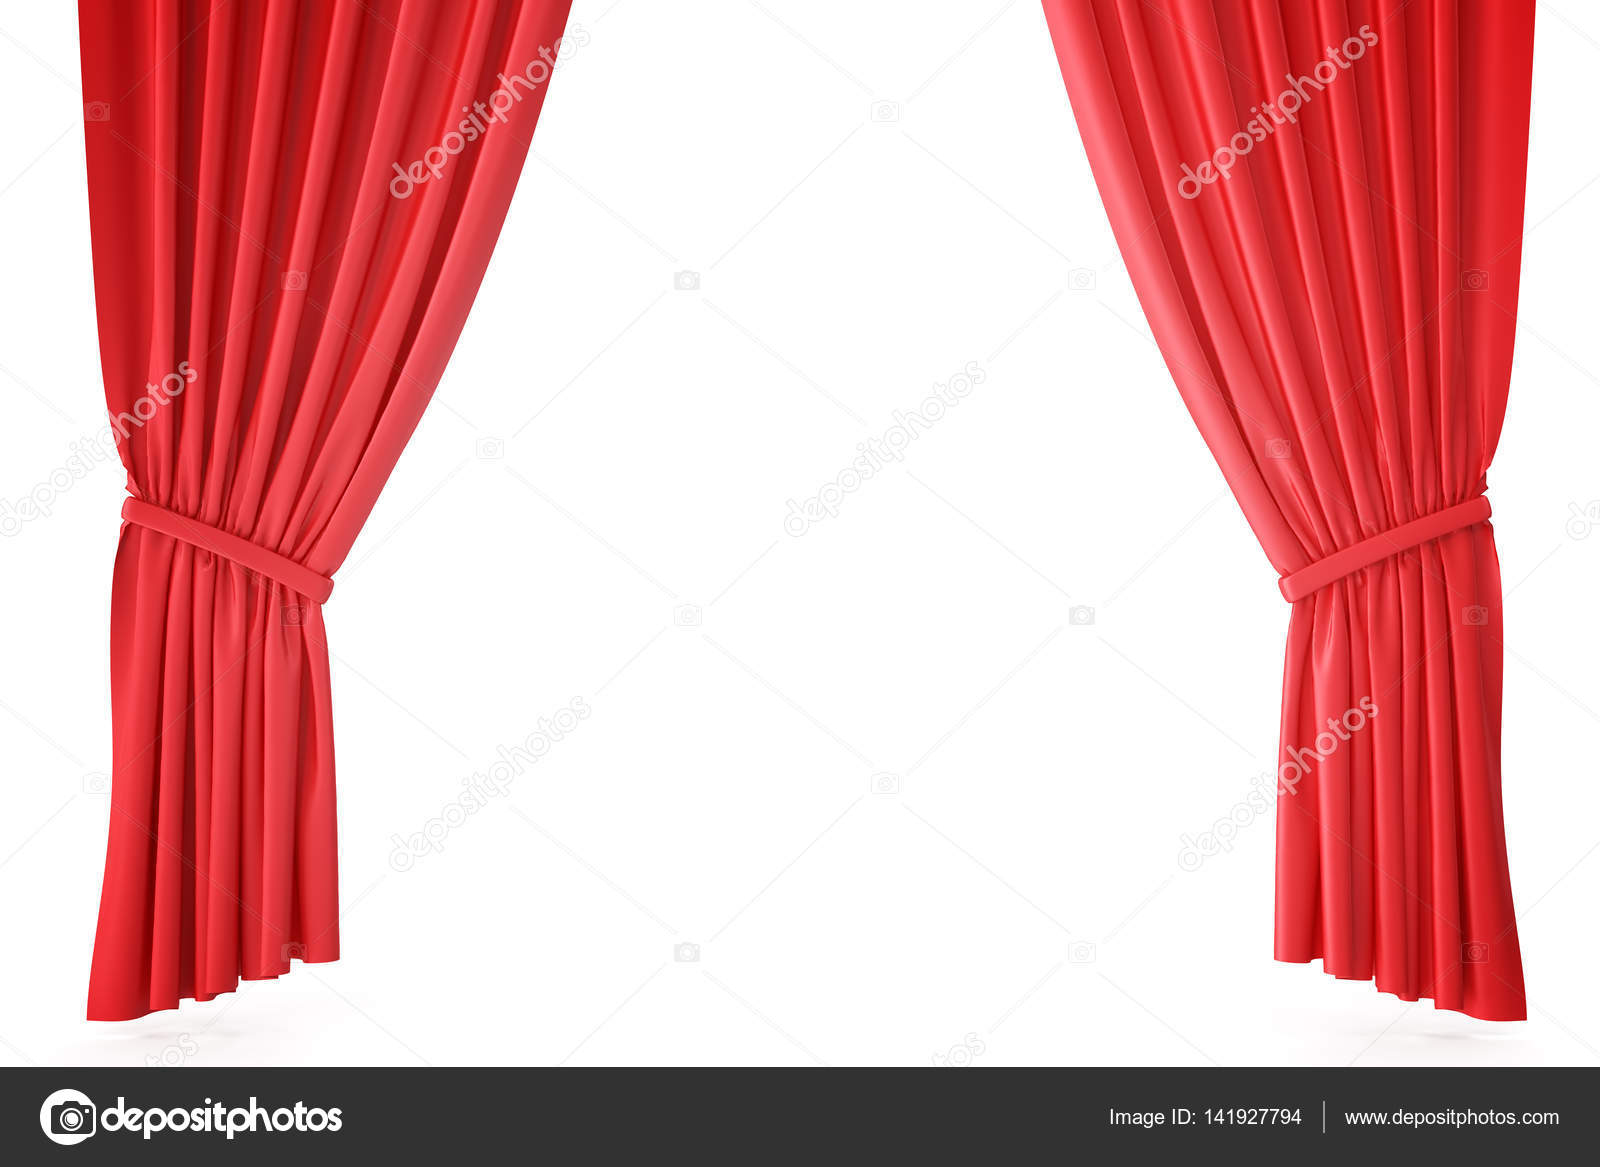 photo stock royalty theater red of curtains illustration stage vector a with velvet curtain